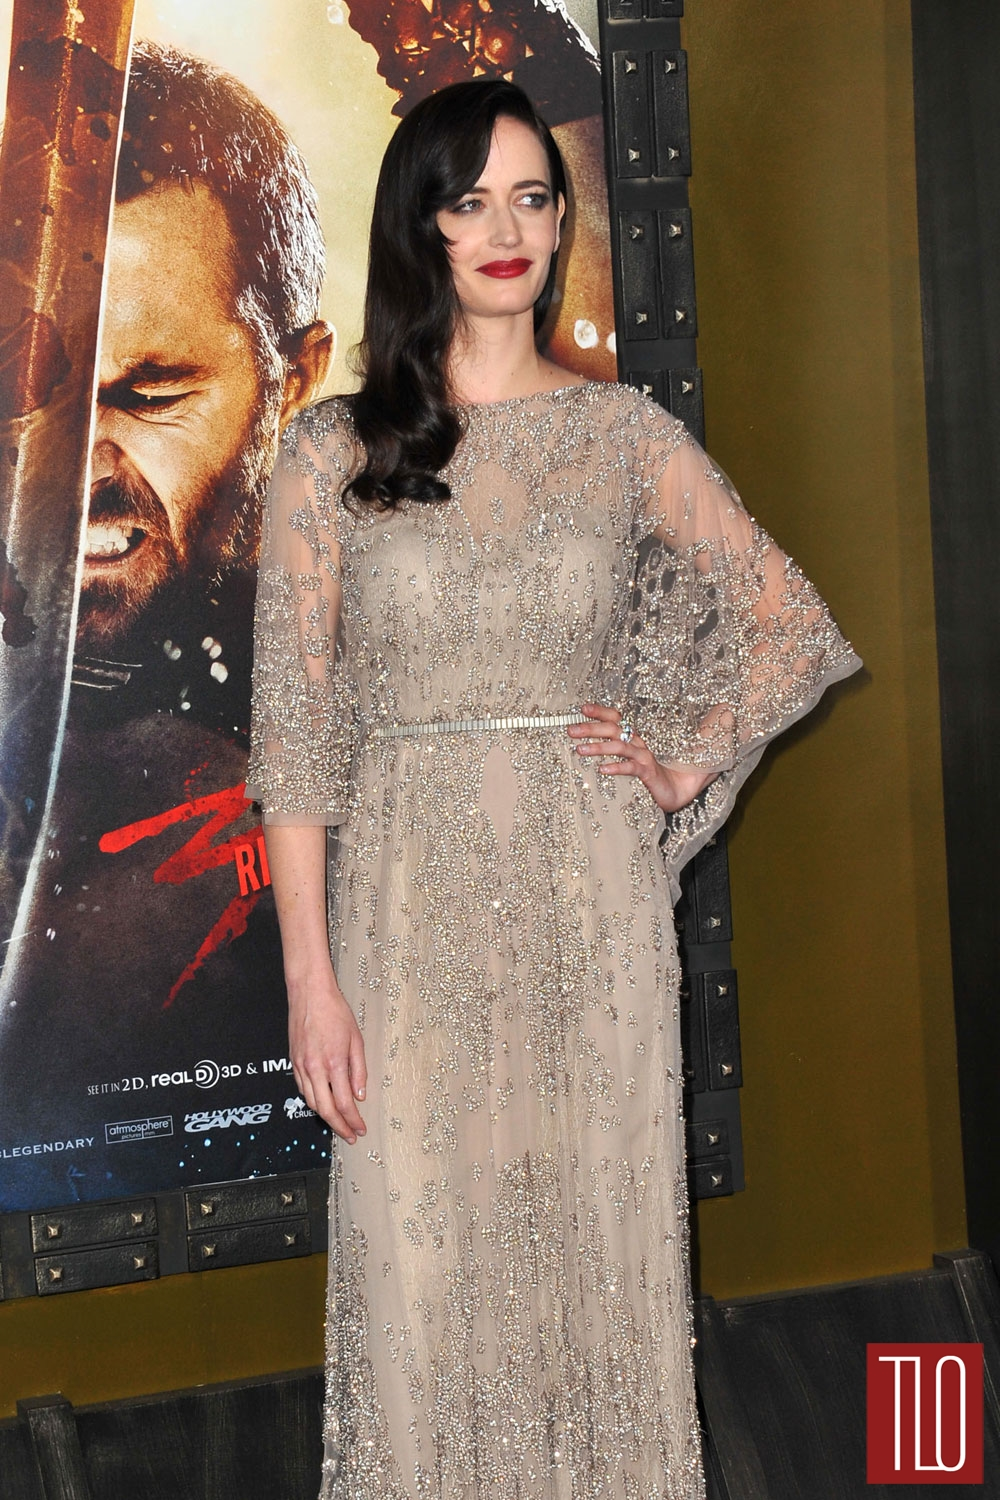 Eva-Green-Elie-Saab-Couture-300-Rise-Empire-LA-Premiere-Tom-Lorenzo-Site-TLO (1)